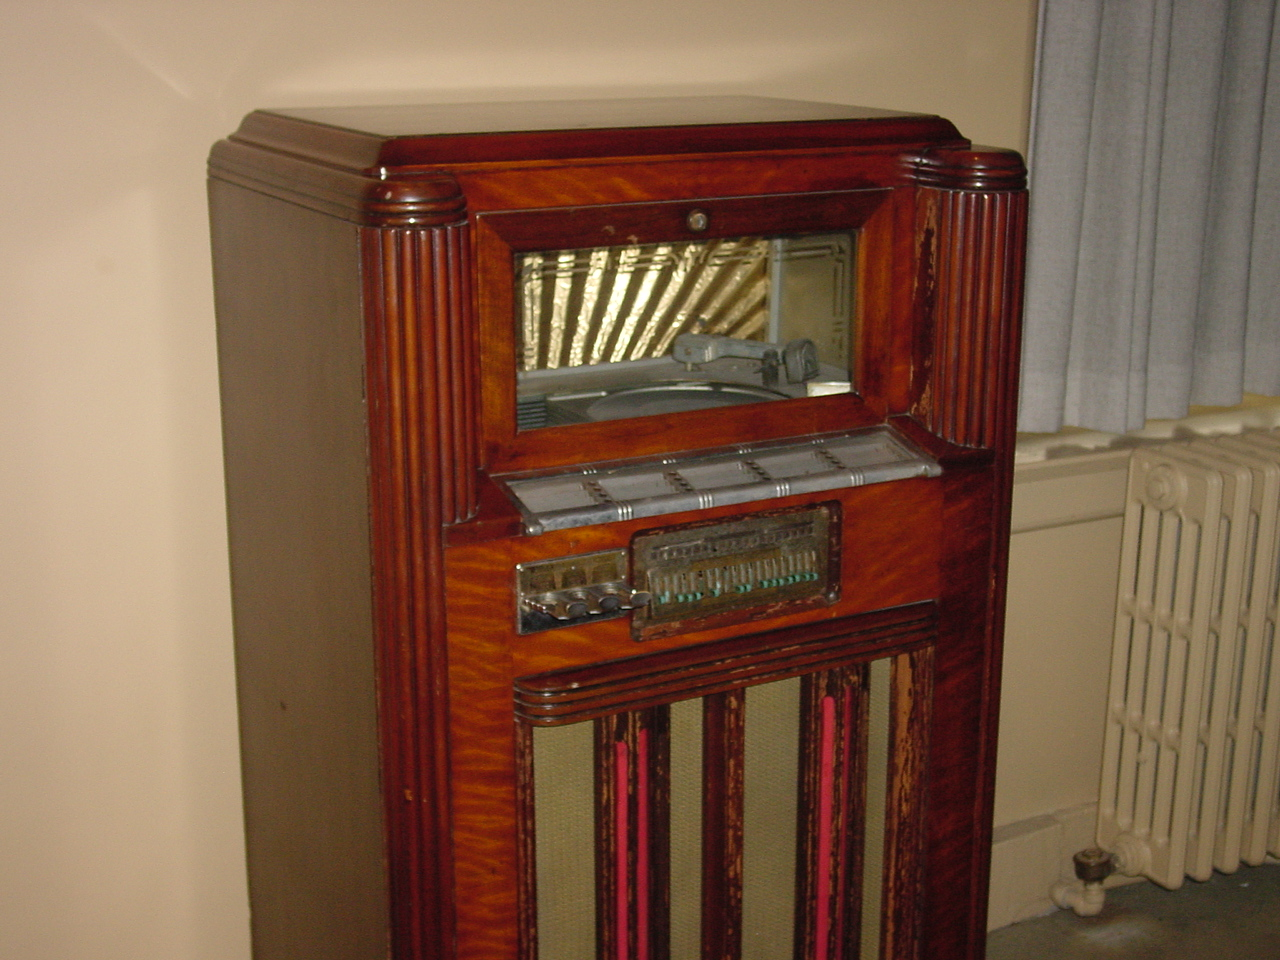 Jukebox in the northeast gallery of the Old Courthouse